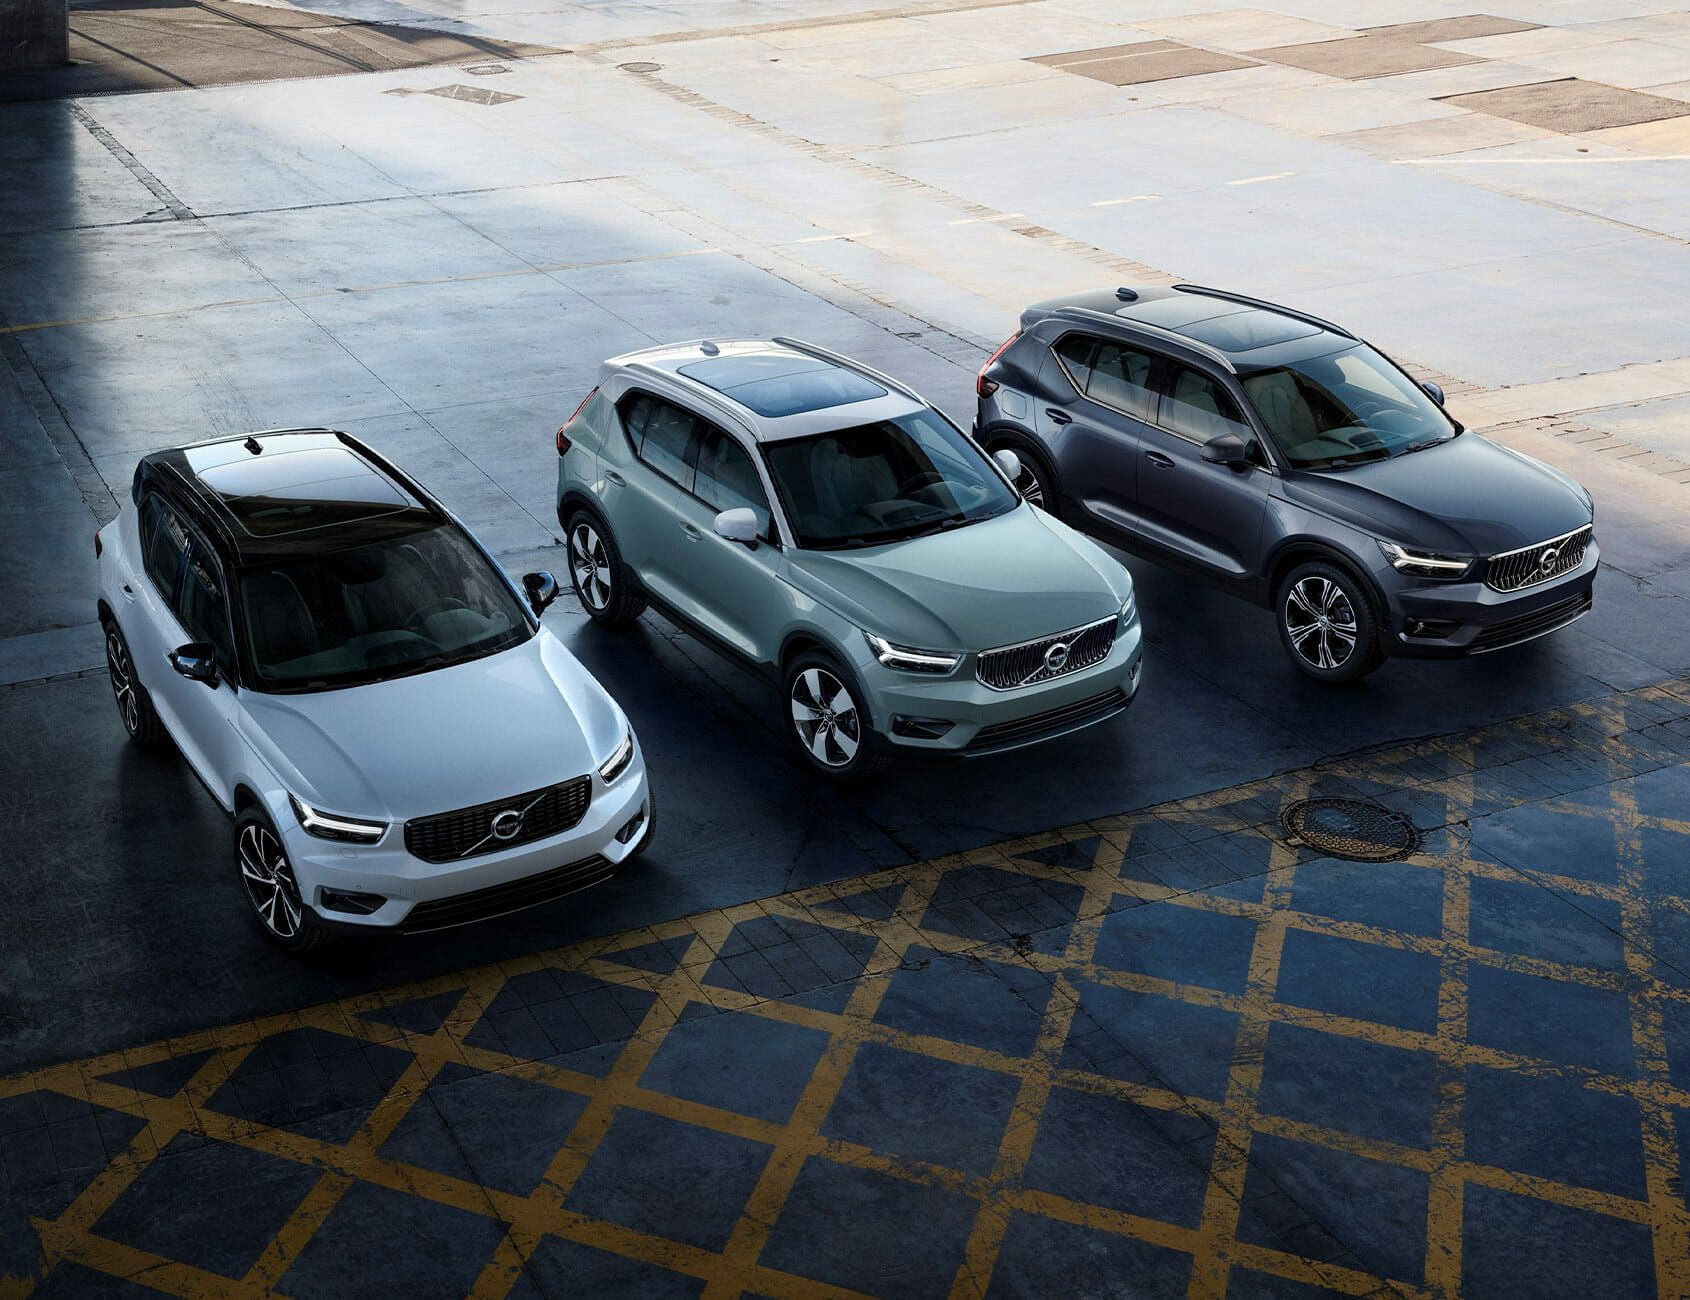 Own a Nissan Rogue? Consider Upgrading To These 3 Cars